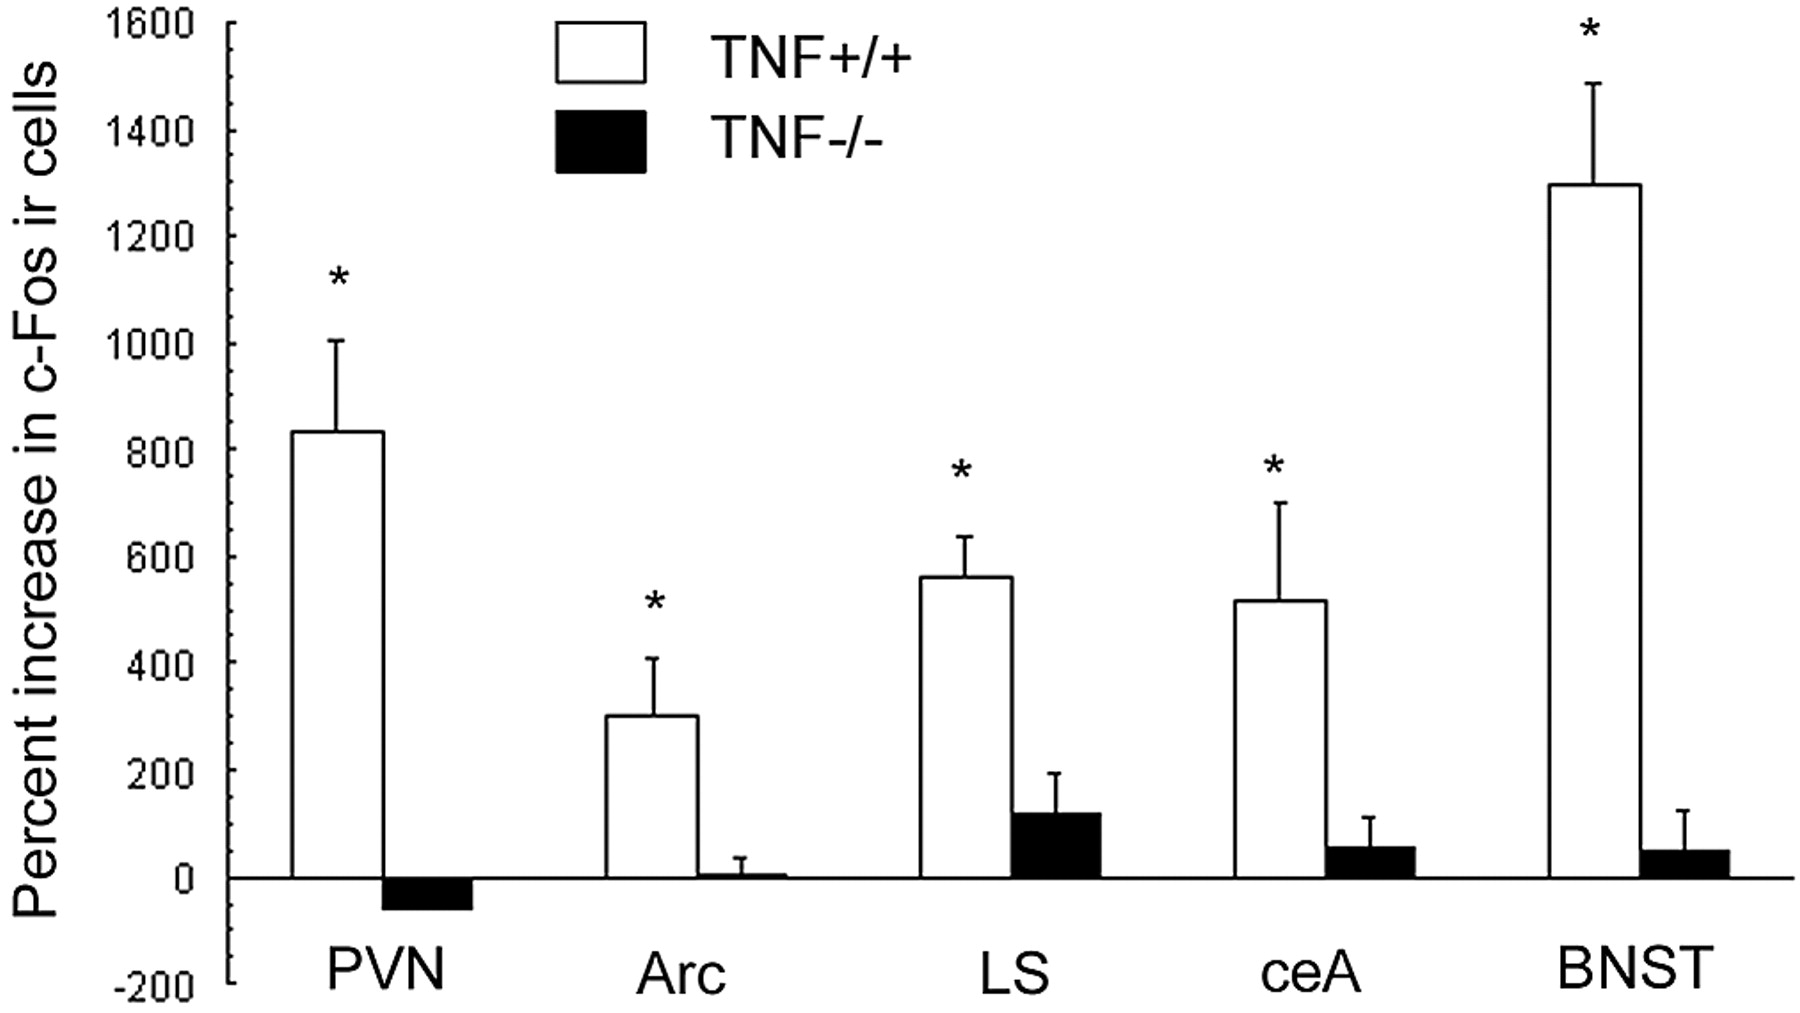 Neuronal Endocrine And Anorexic Responses To The T Cell Ensure Fos Chocolate Tin 1000 Gr Download Figure